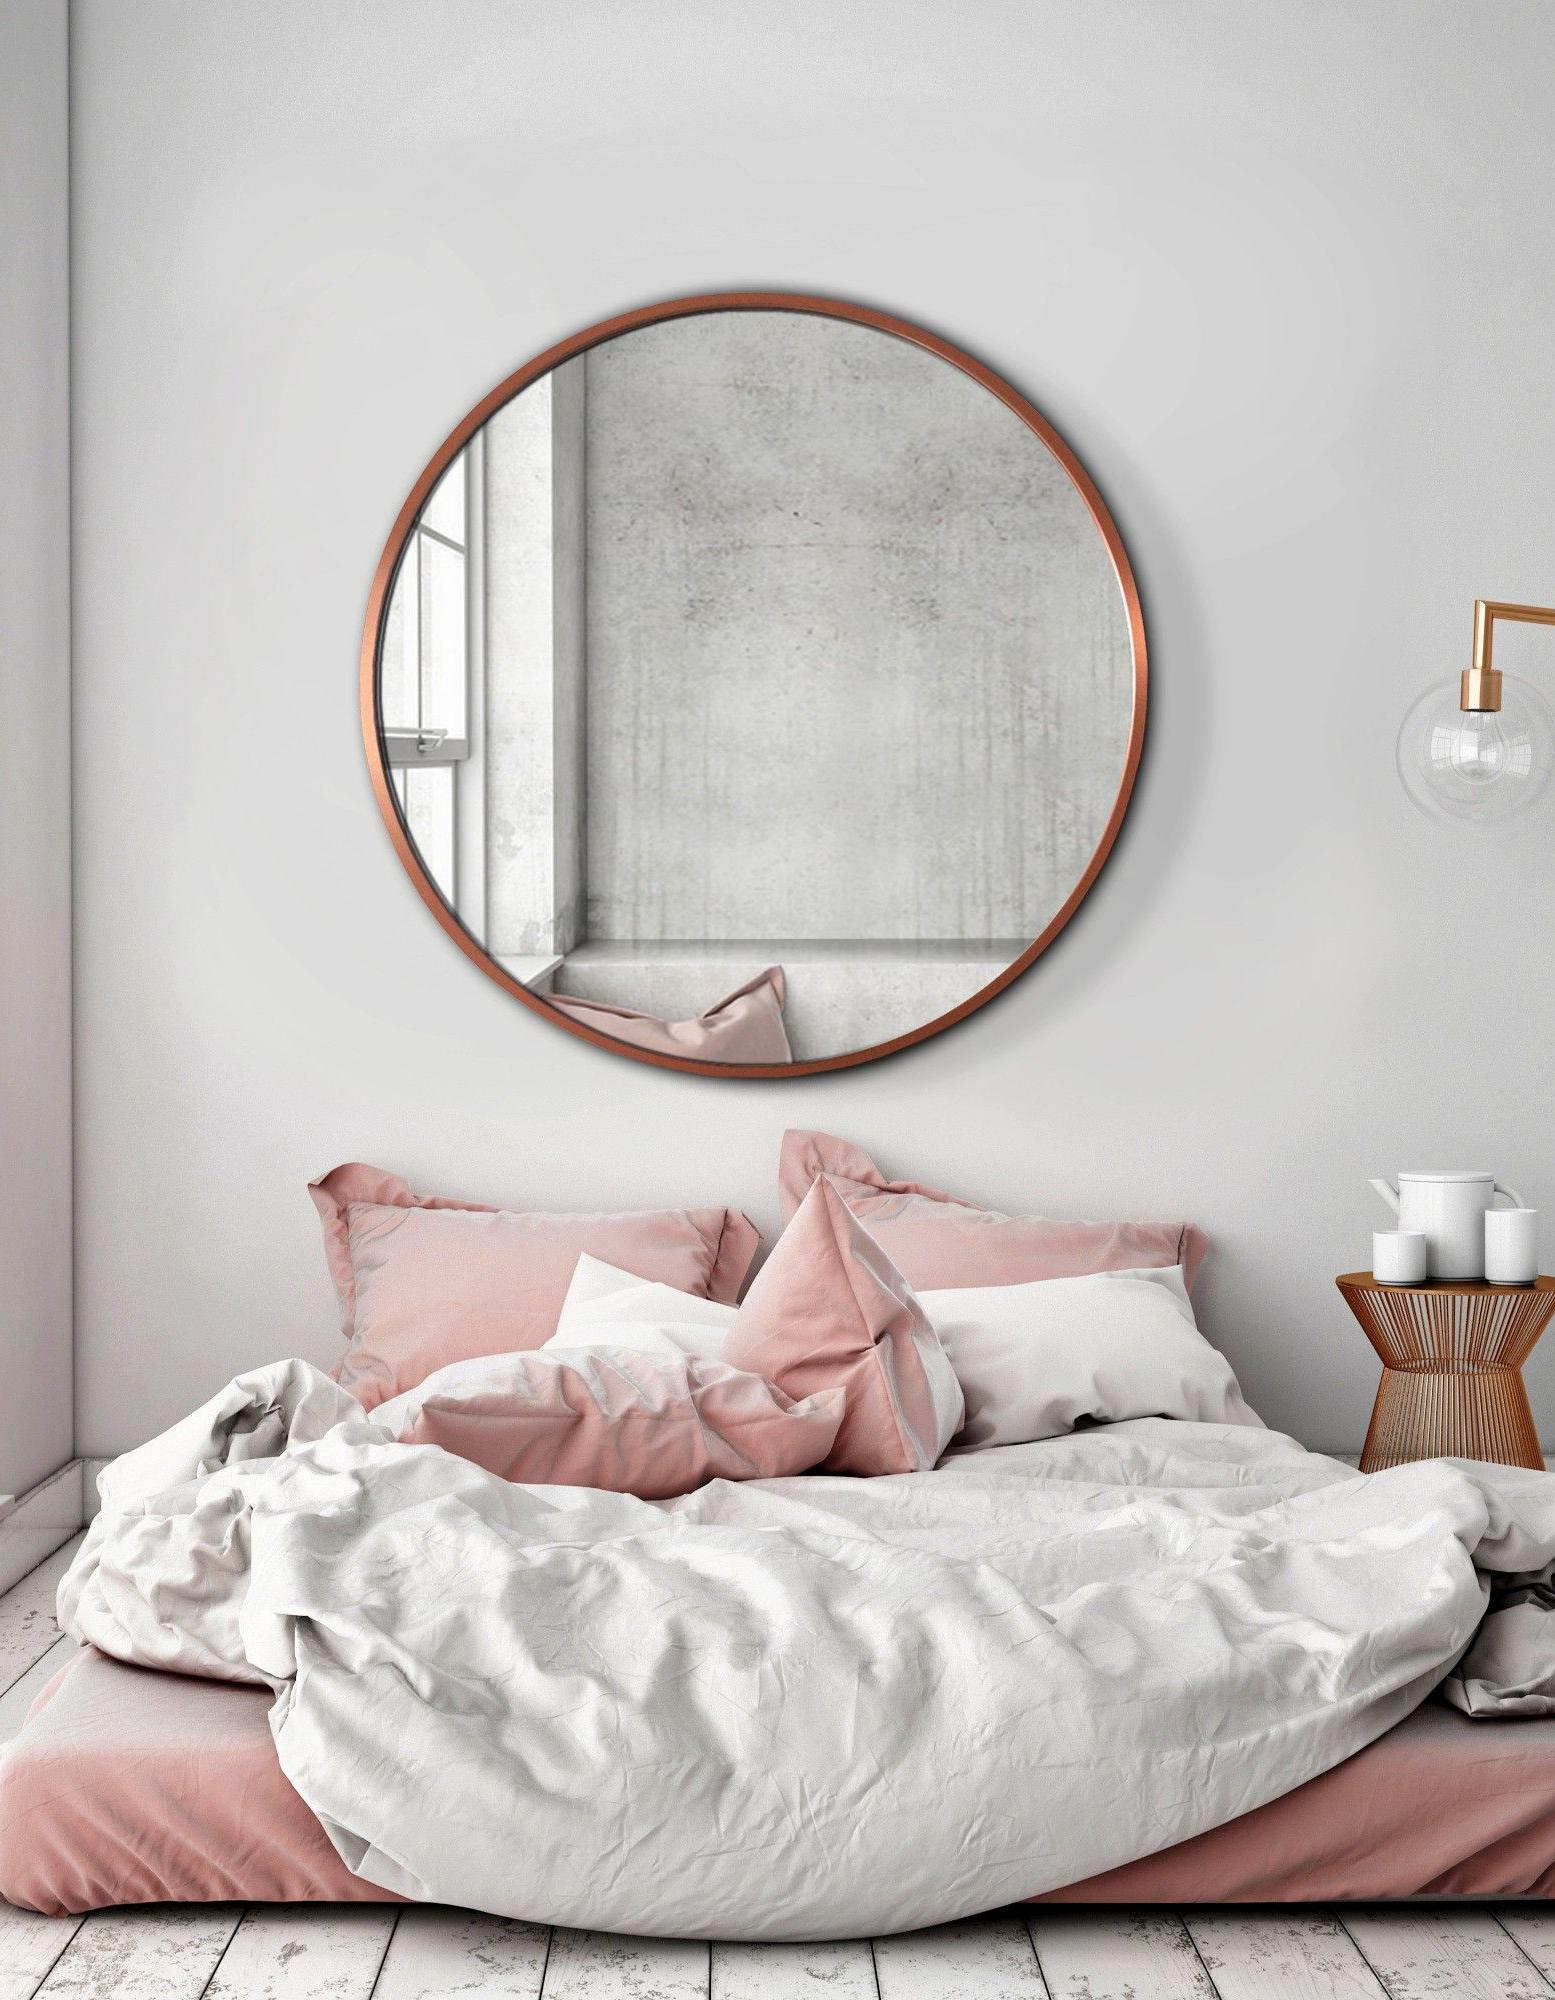 le miroir rond cet indispensable d co nos int rieurs elle d coration. Black Bedroom Furniture Sets. Home Design Ideas